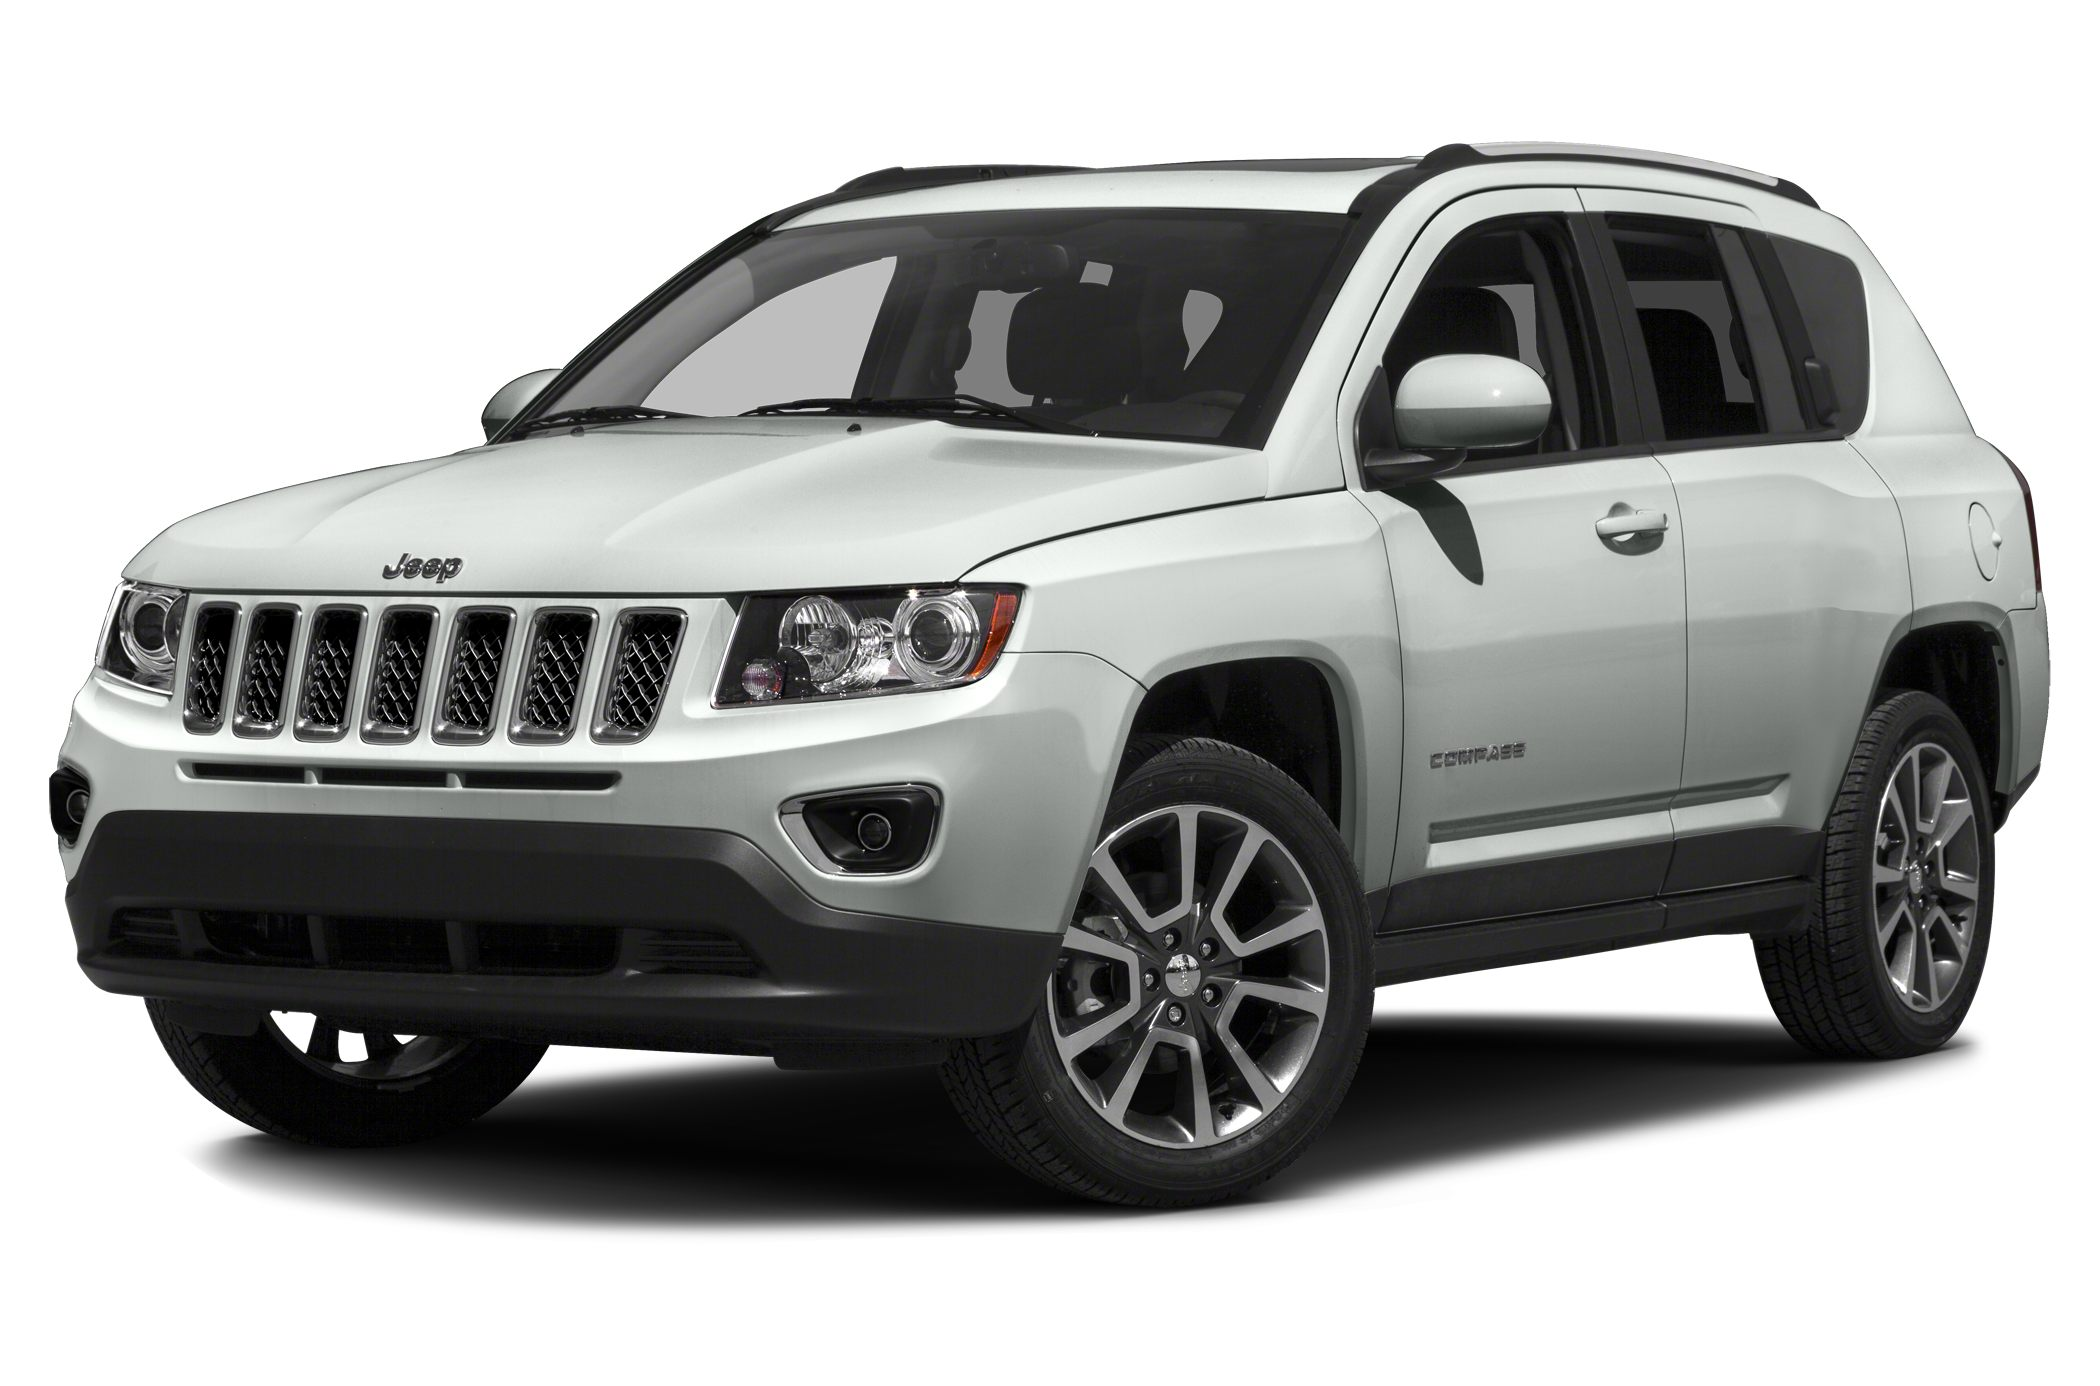 2014 Jeep Compass Limited Contact Lake Keowee Chrysler Dodge Jeep today for information on dozens